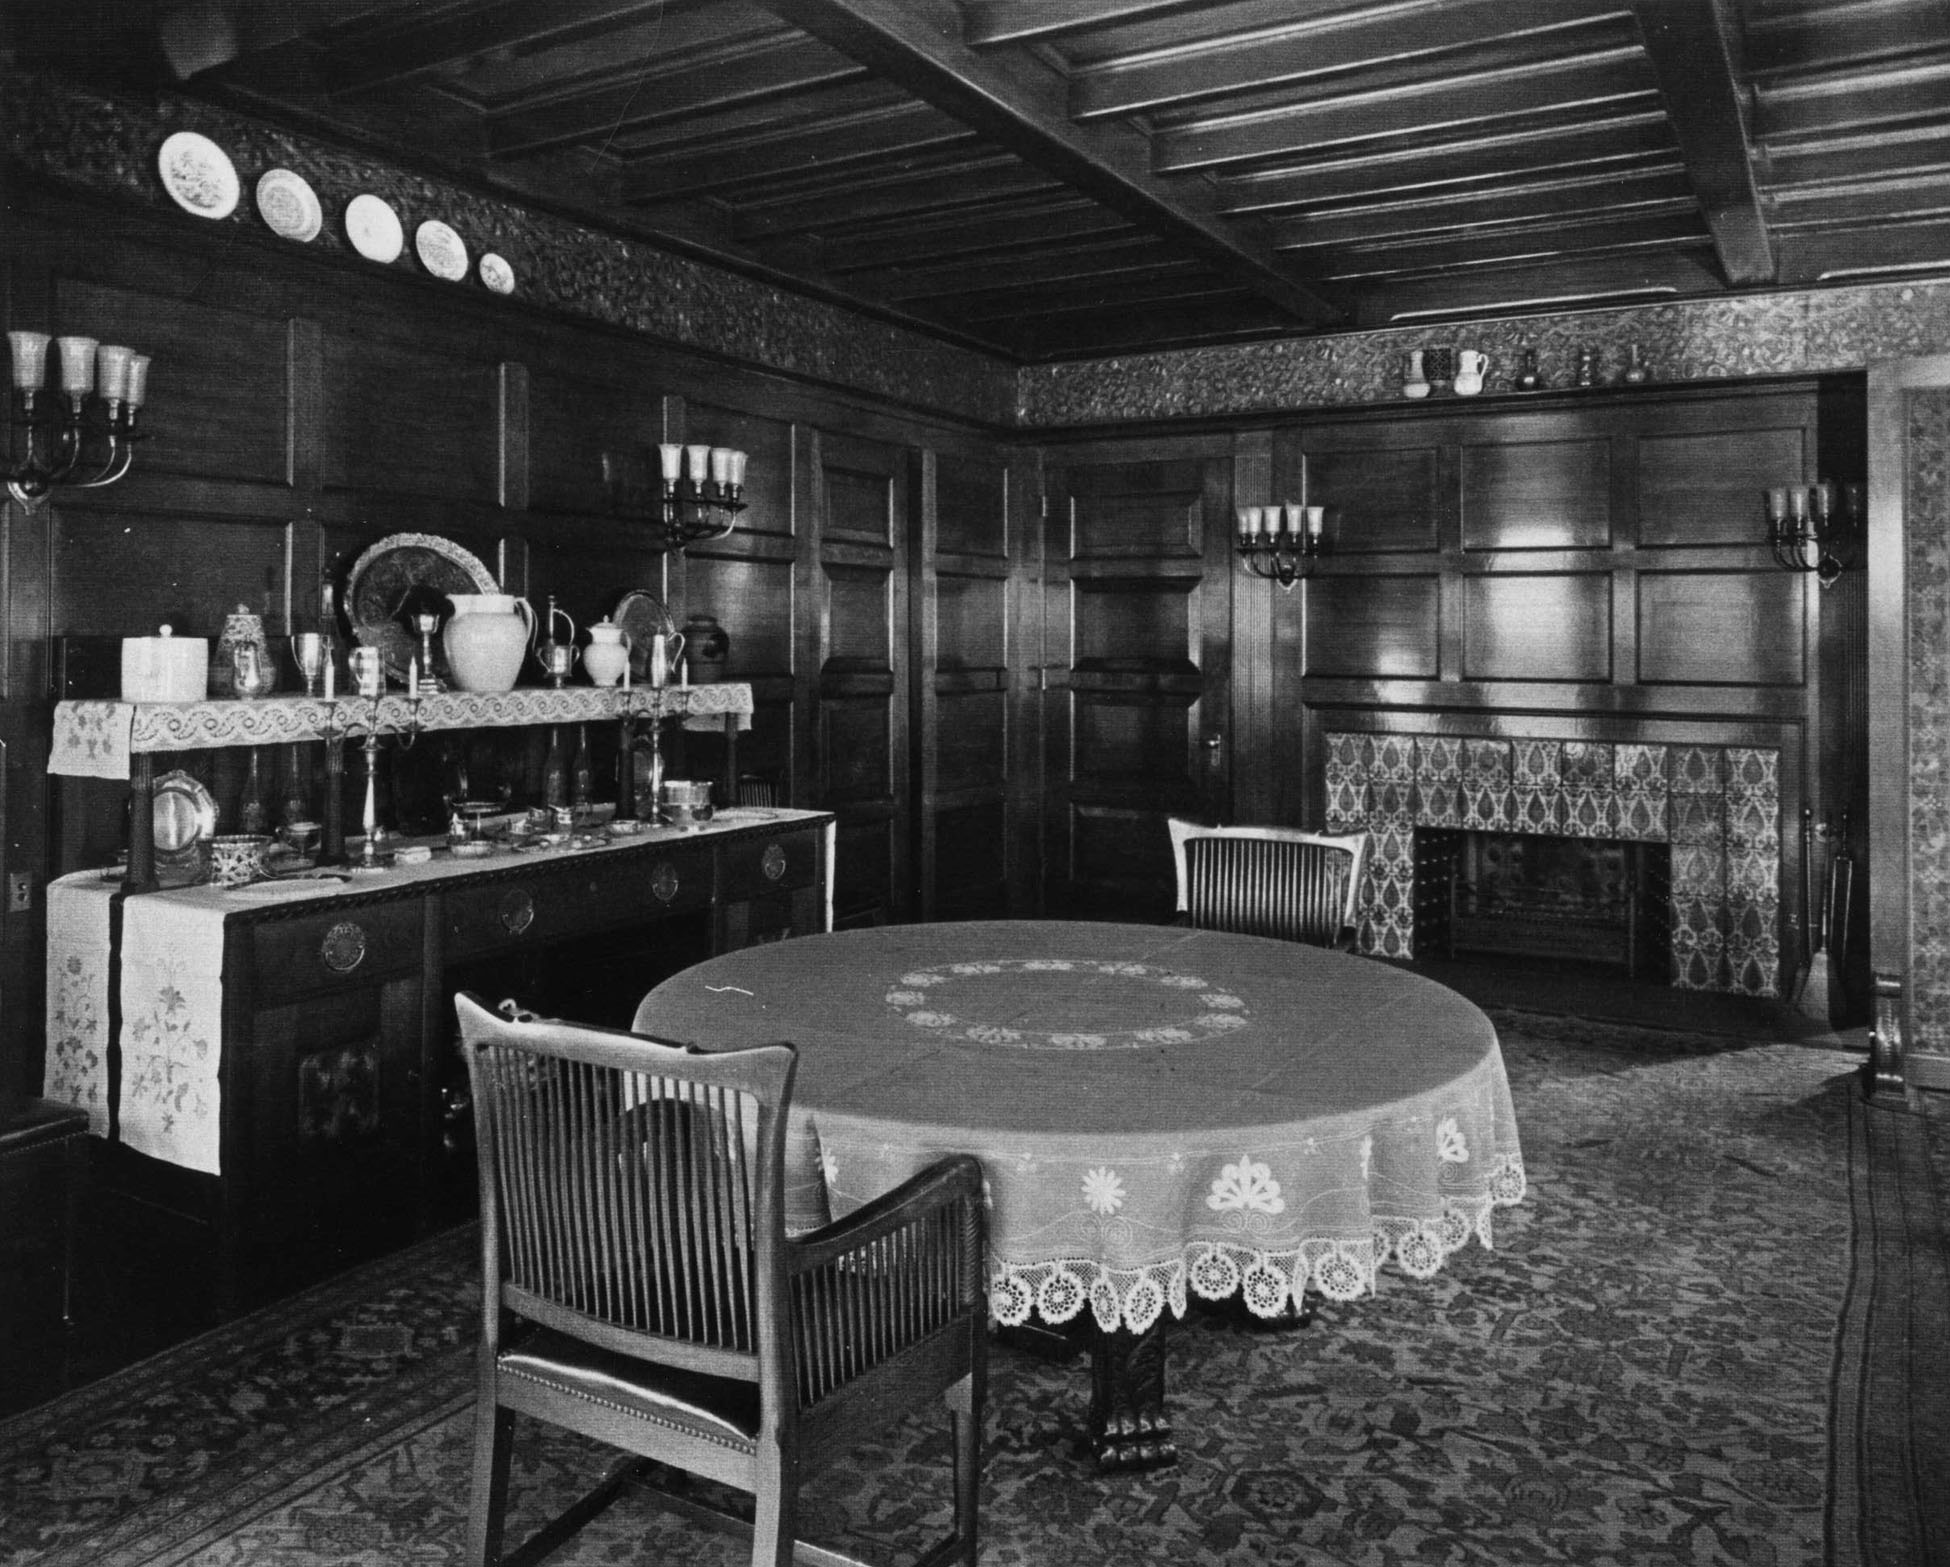 The bowl on the top shelf at the left in 1923, photo courtesy of the Glessner House Museum.